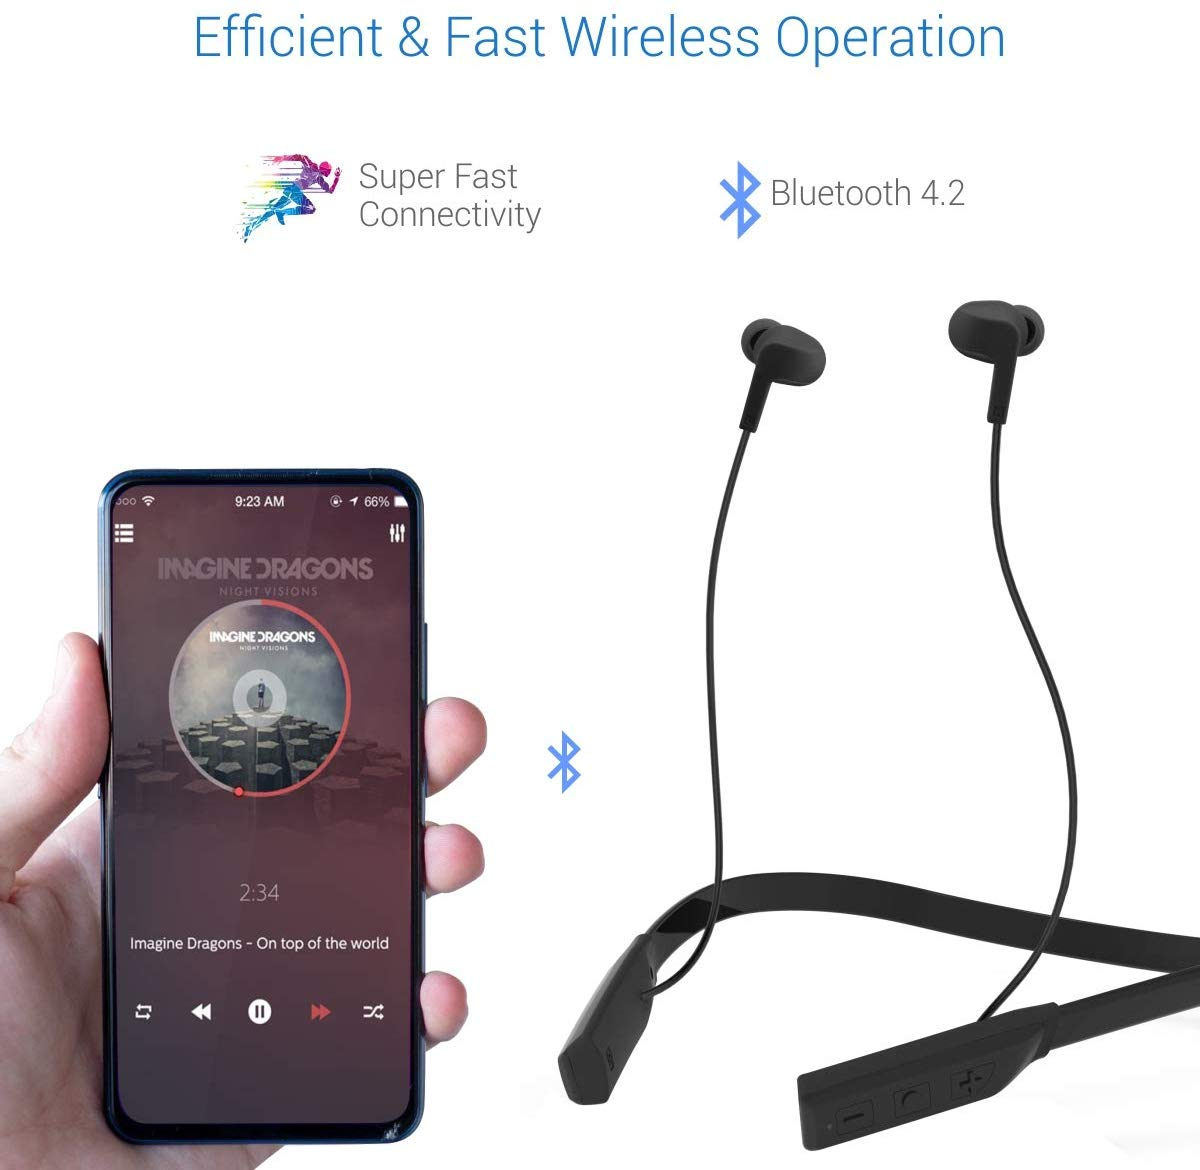 Portronics Harmonics 220  HD Stereo Wireless Bluetooth Sports Headset with High Bass, Powerful Audio Drivers Comfortable Fit, for All Android & iOS Devices, (POR-559-Black,POR-560-Grey)